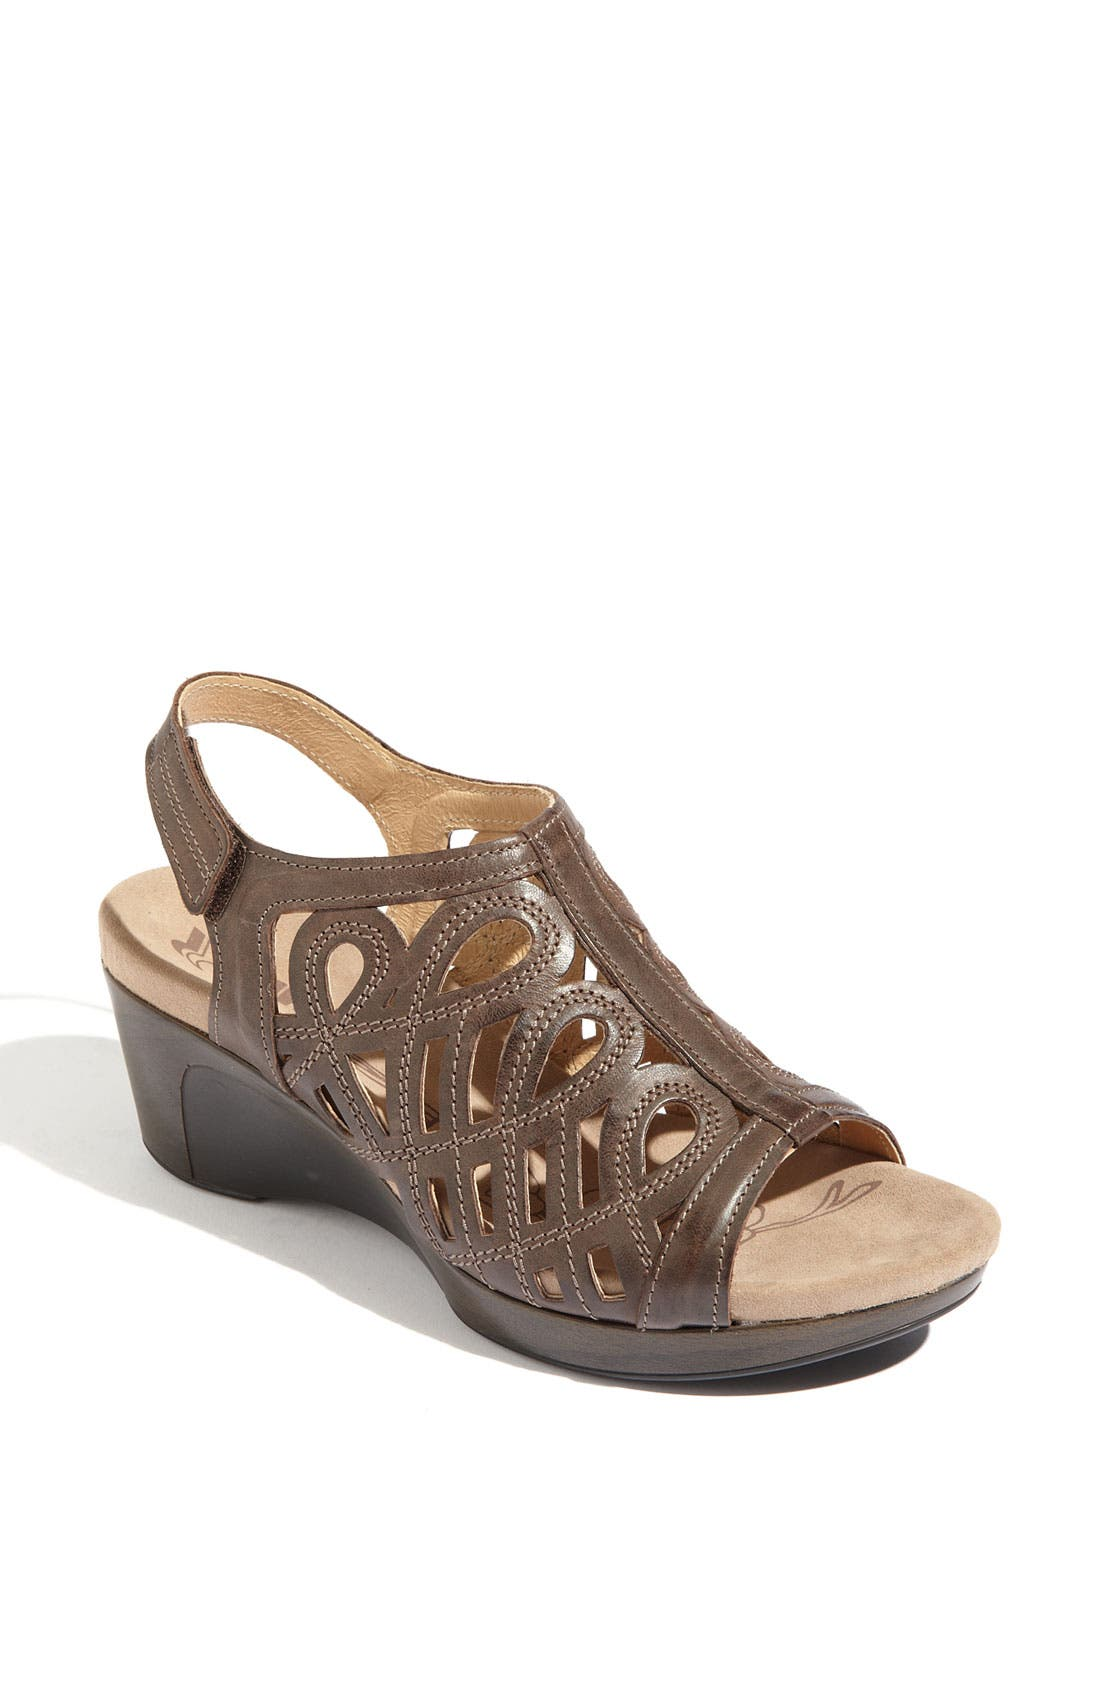 Alternate Image 1 Selected - Romika® 'Waikiki 19' Sandal